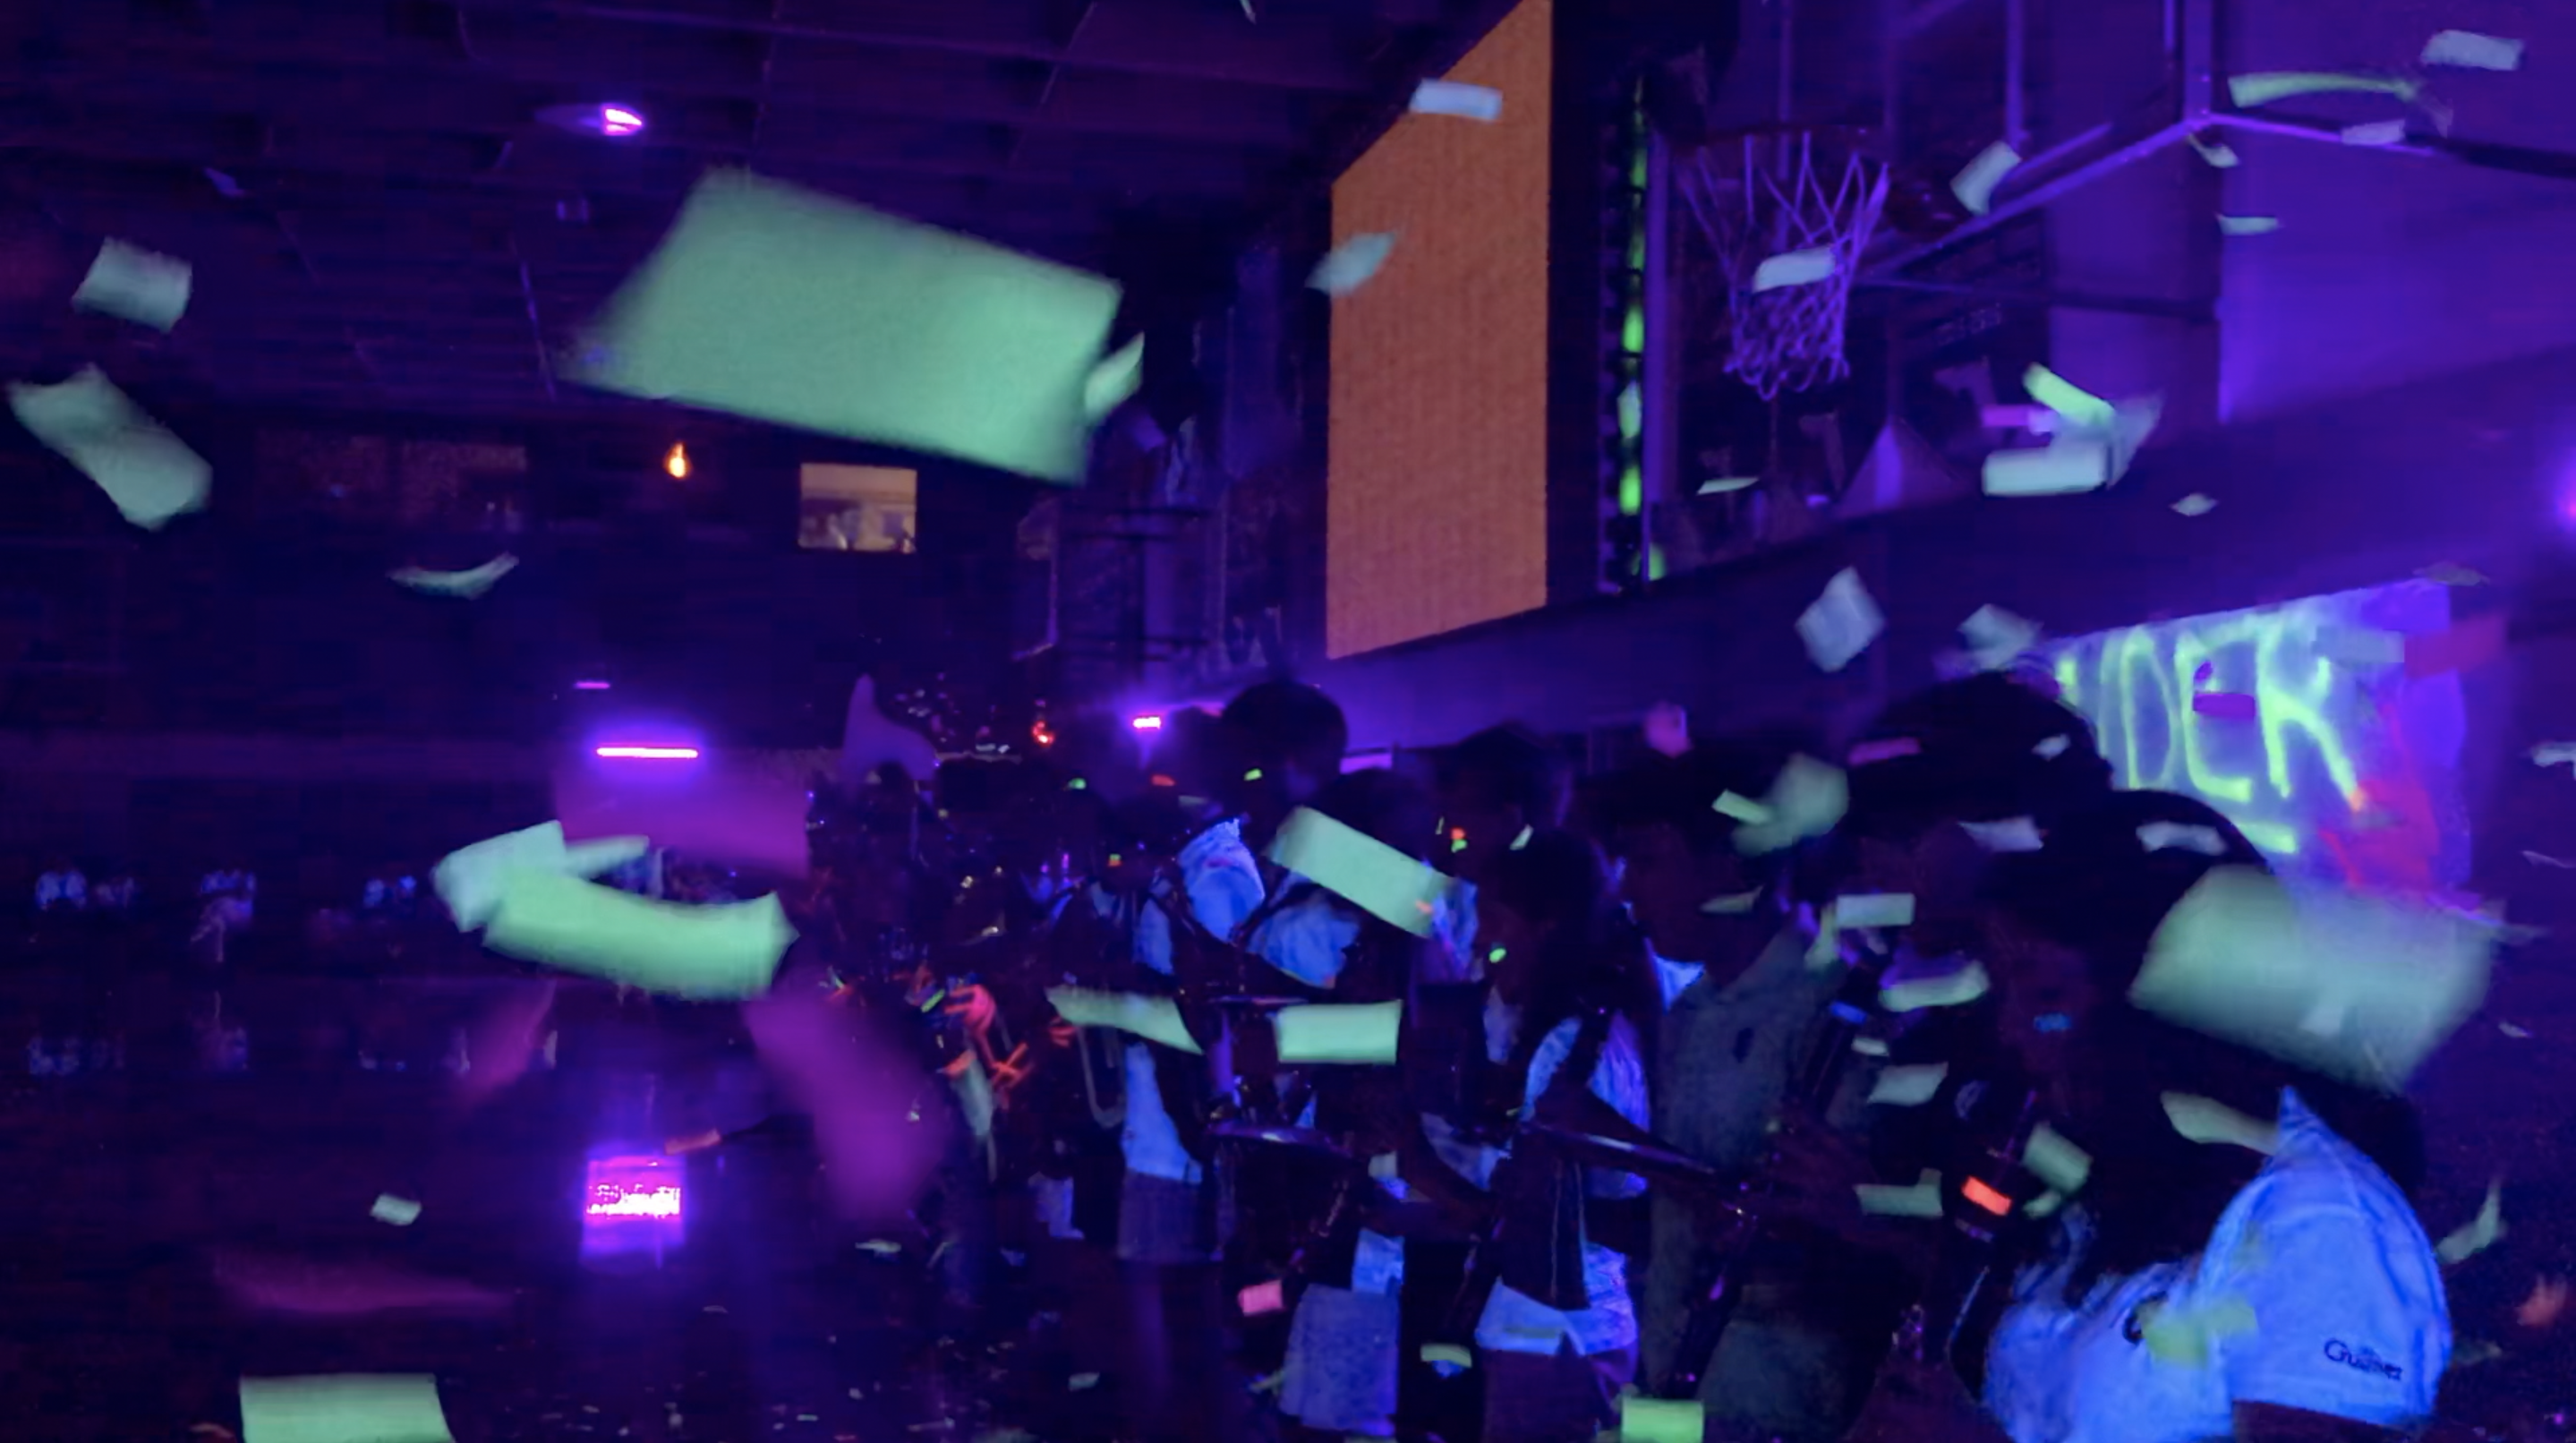 Gulliver Glows in 2018 Blacklight Pep Rally